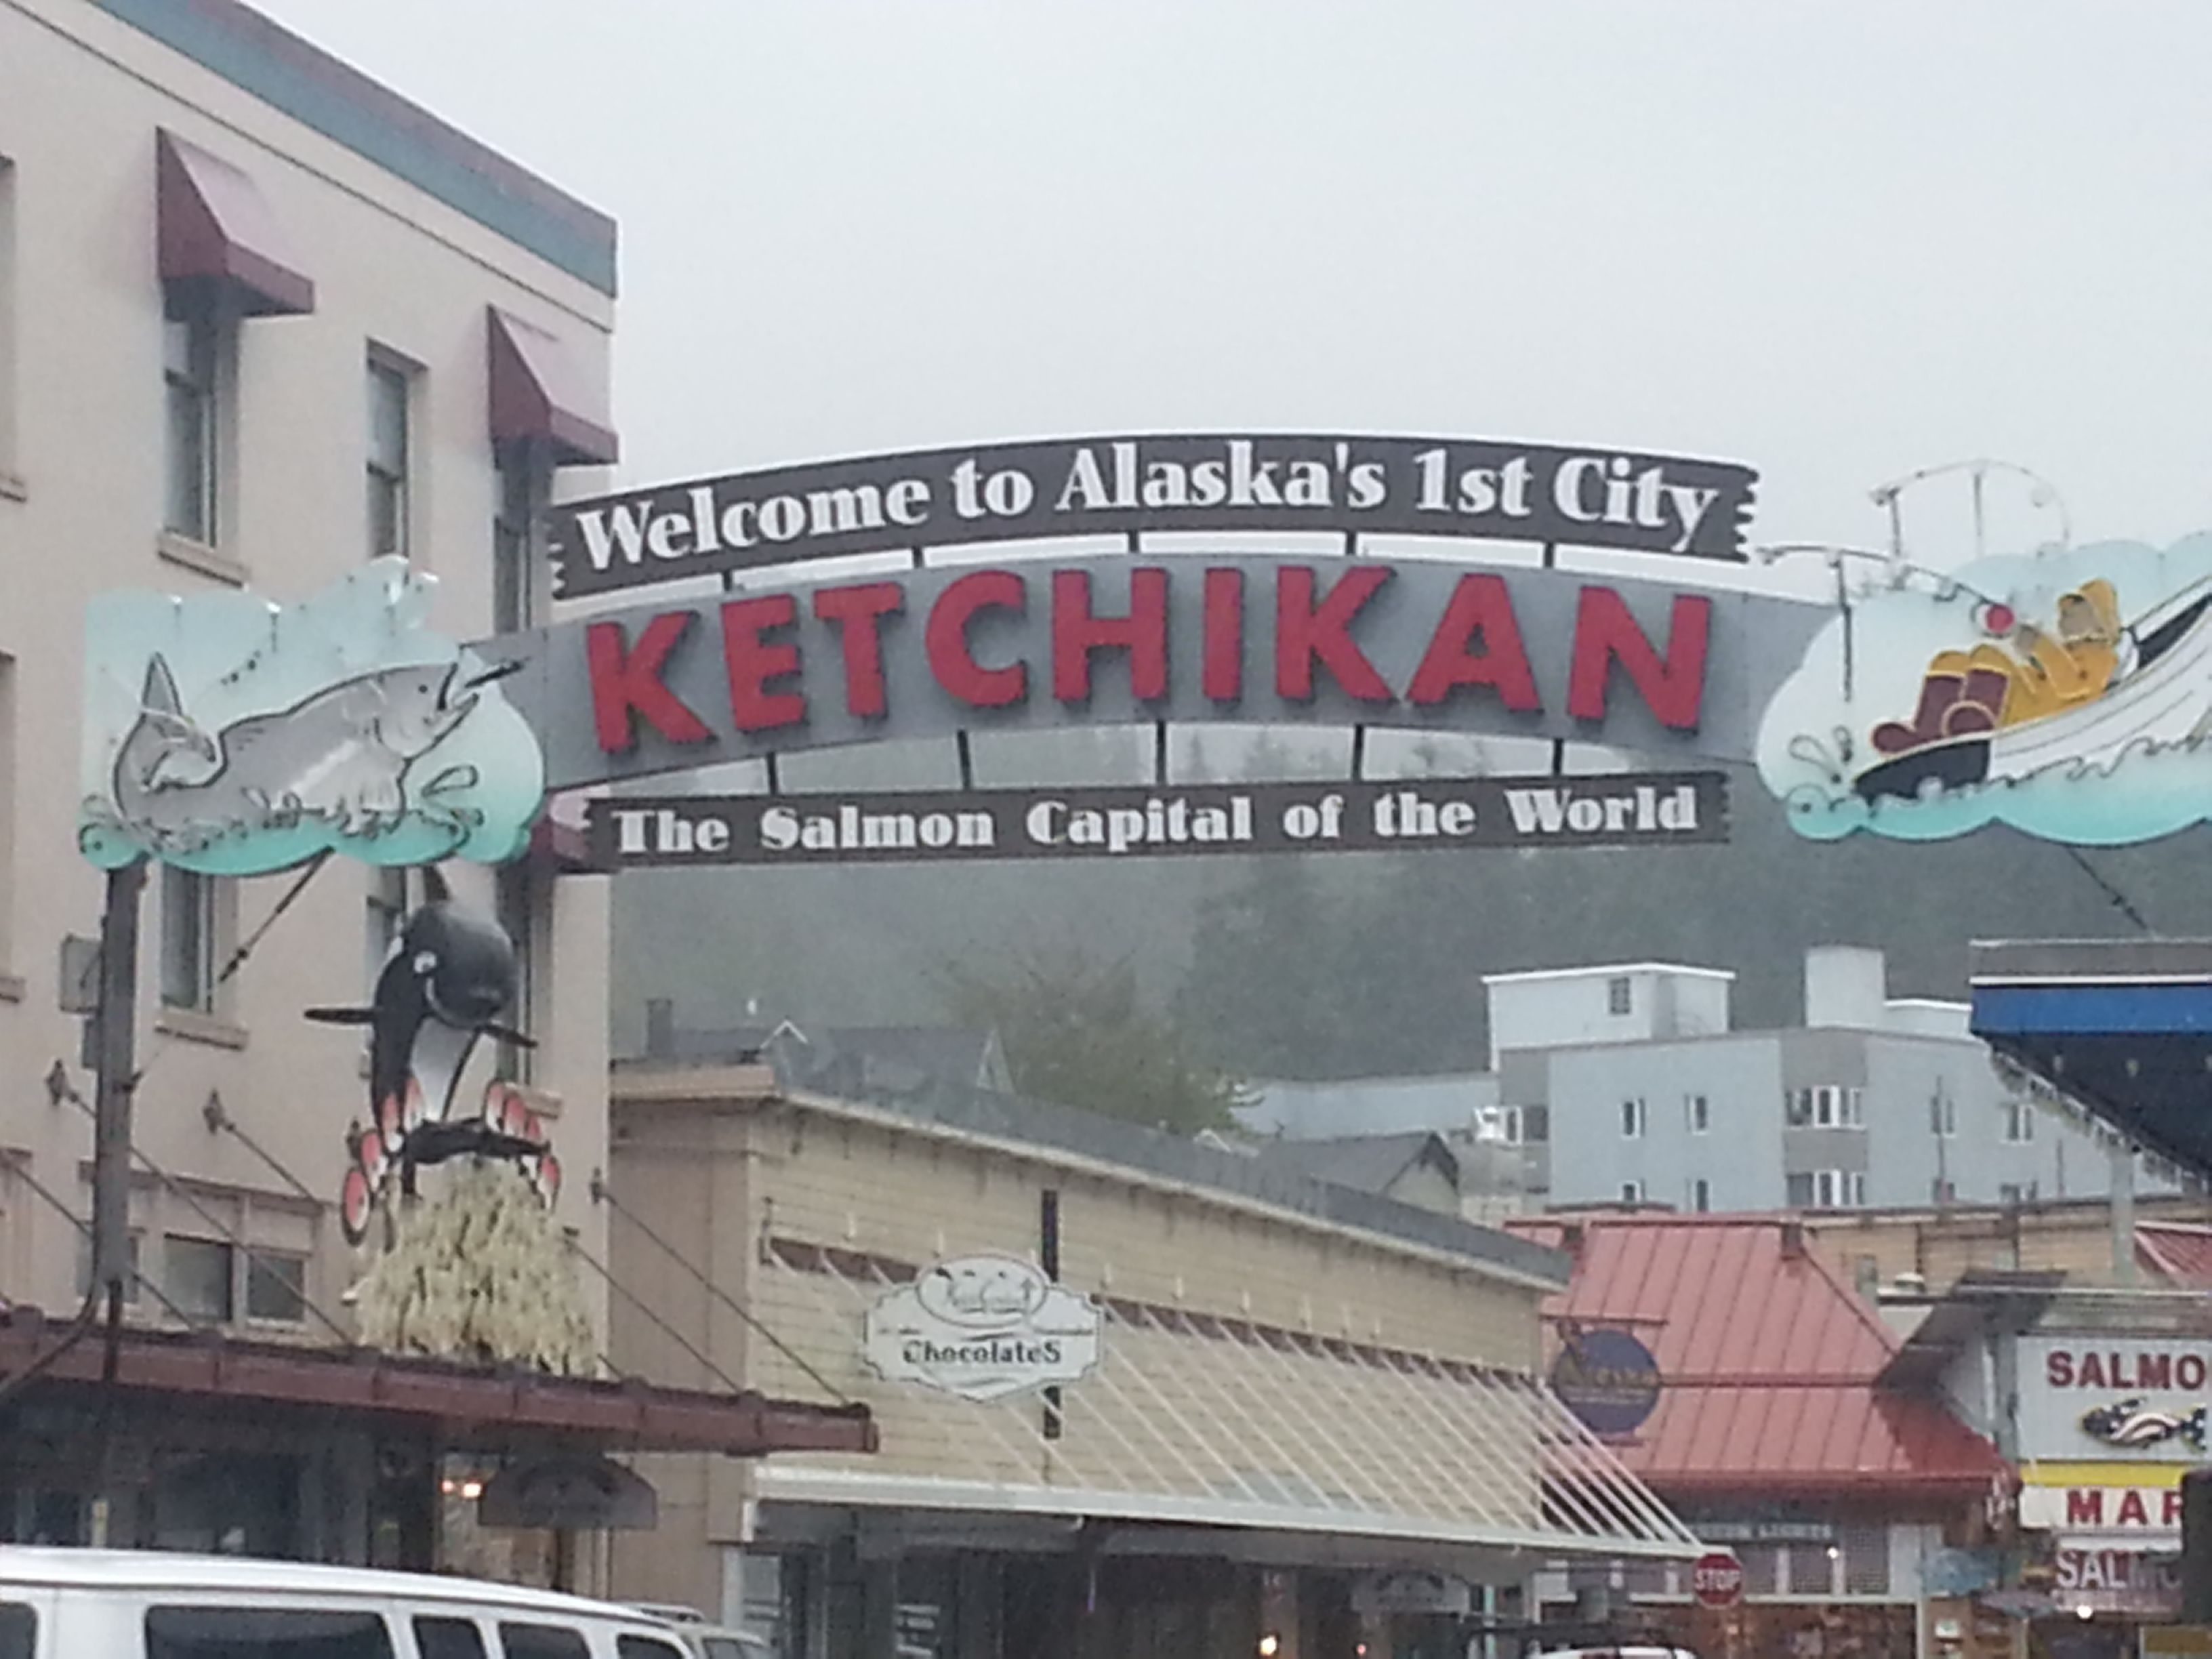 A wonderful little town in Alaska that is often included on Inside Passage cruise itineraries.